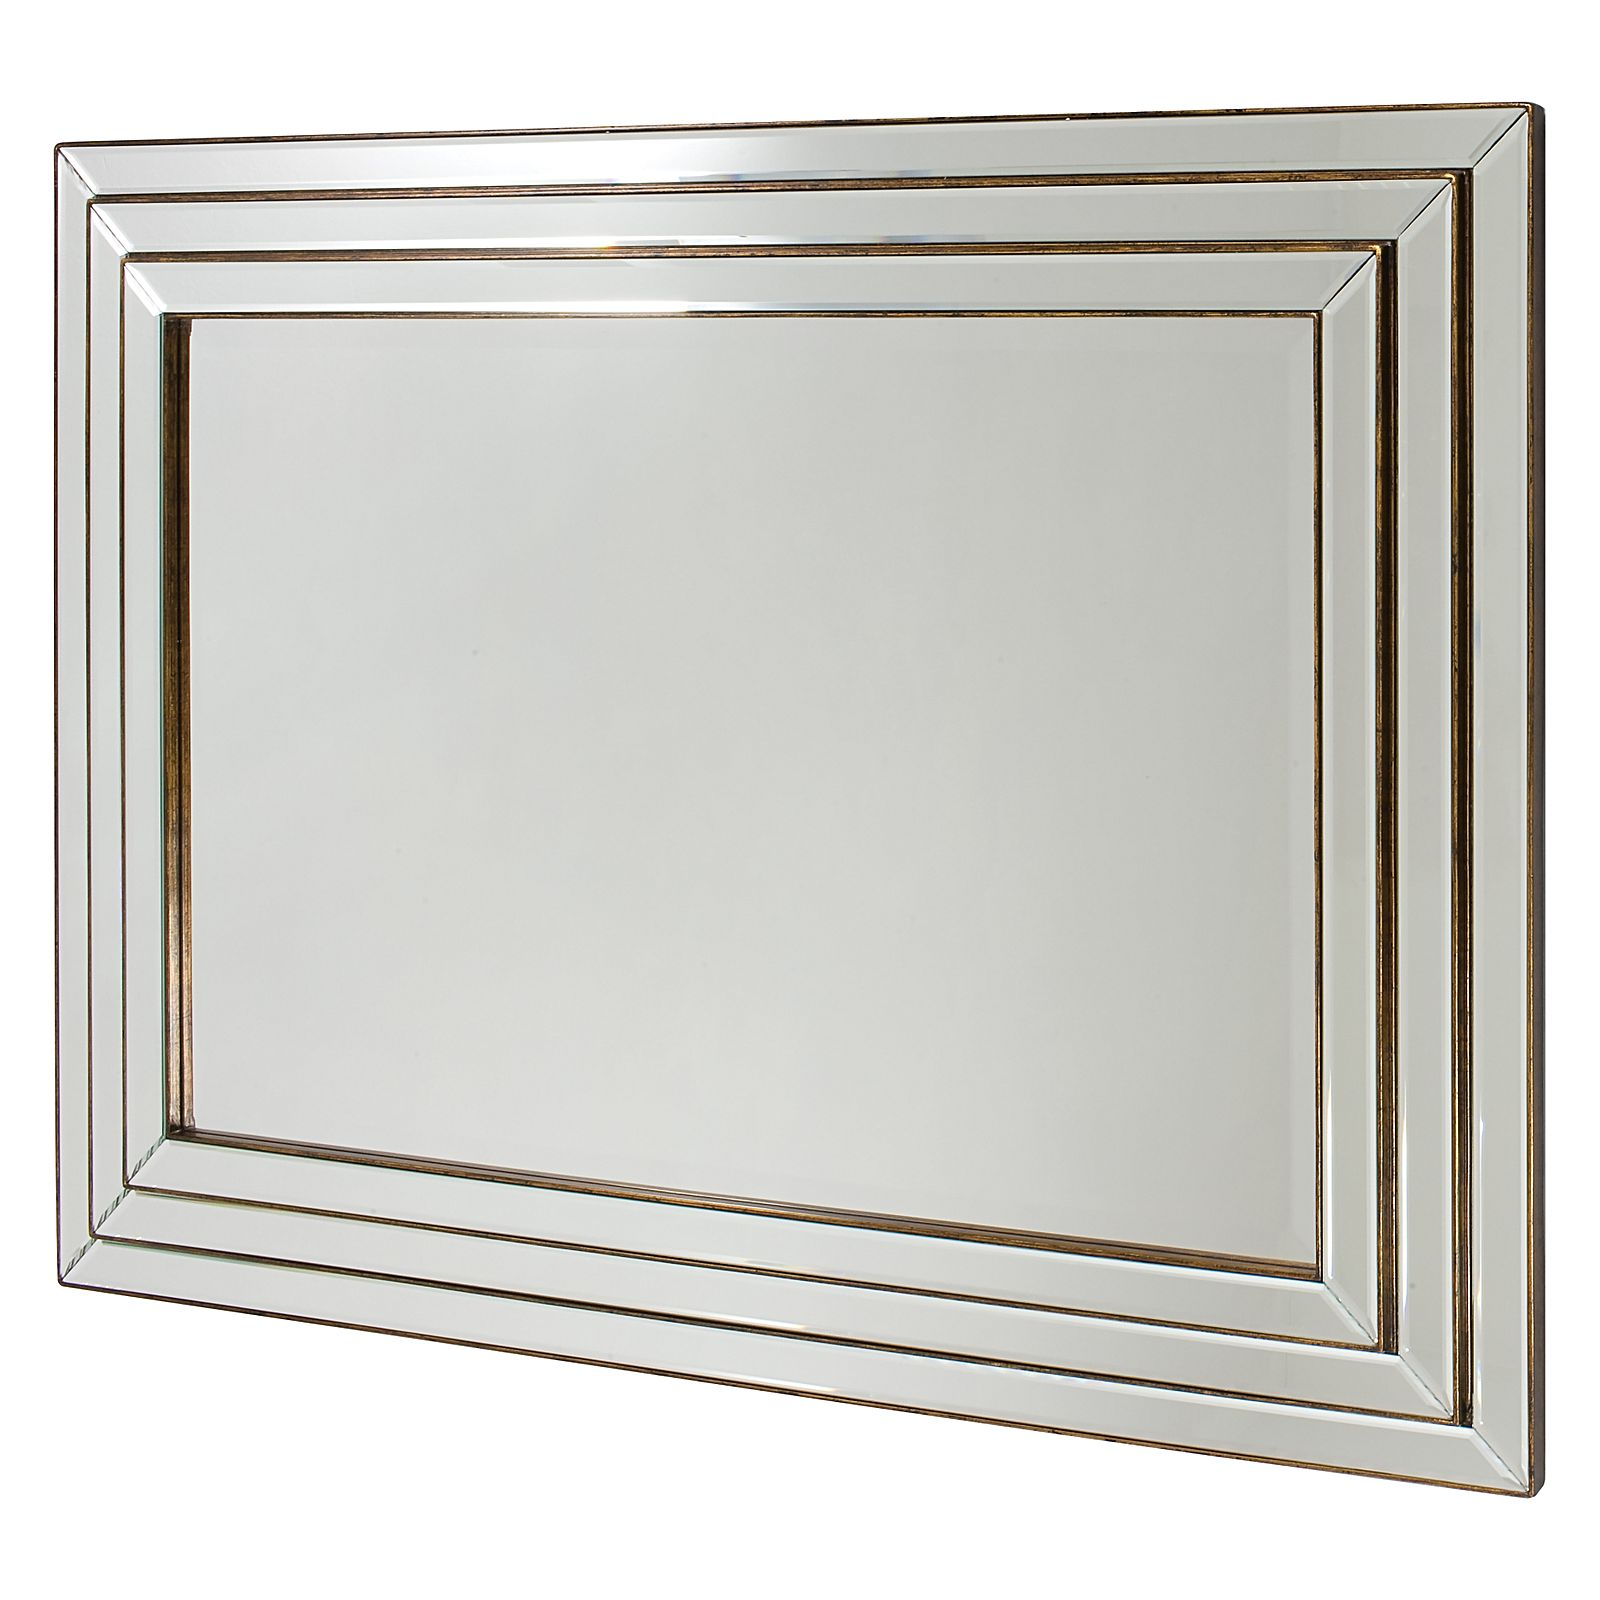 Fashionable Corbyn Wall Mirror Regarding Triple Wall Mirrors (View 4 of 20)